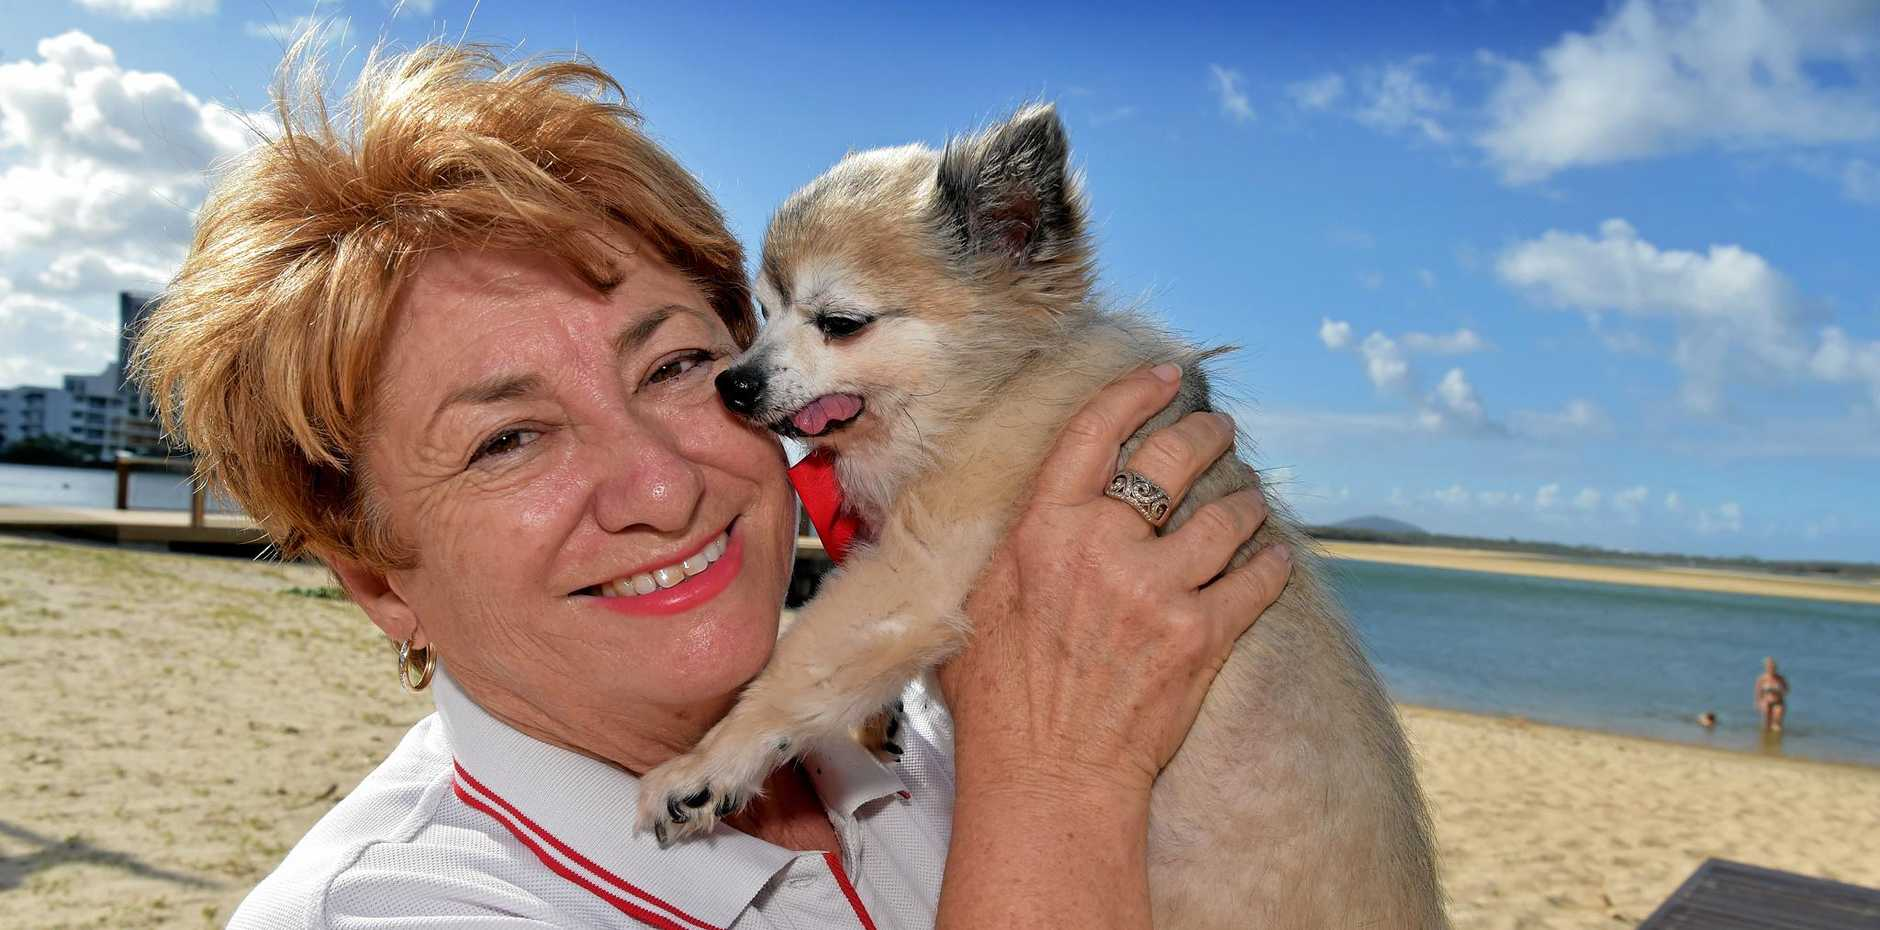 DRIVEN: Julie Penlington, founder of 4 Paws Animal Rescue, says she can't imagine a time when she won't be fighting for an underdog.